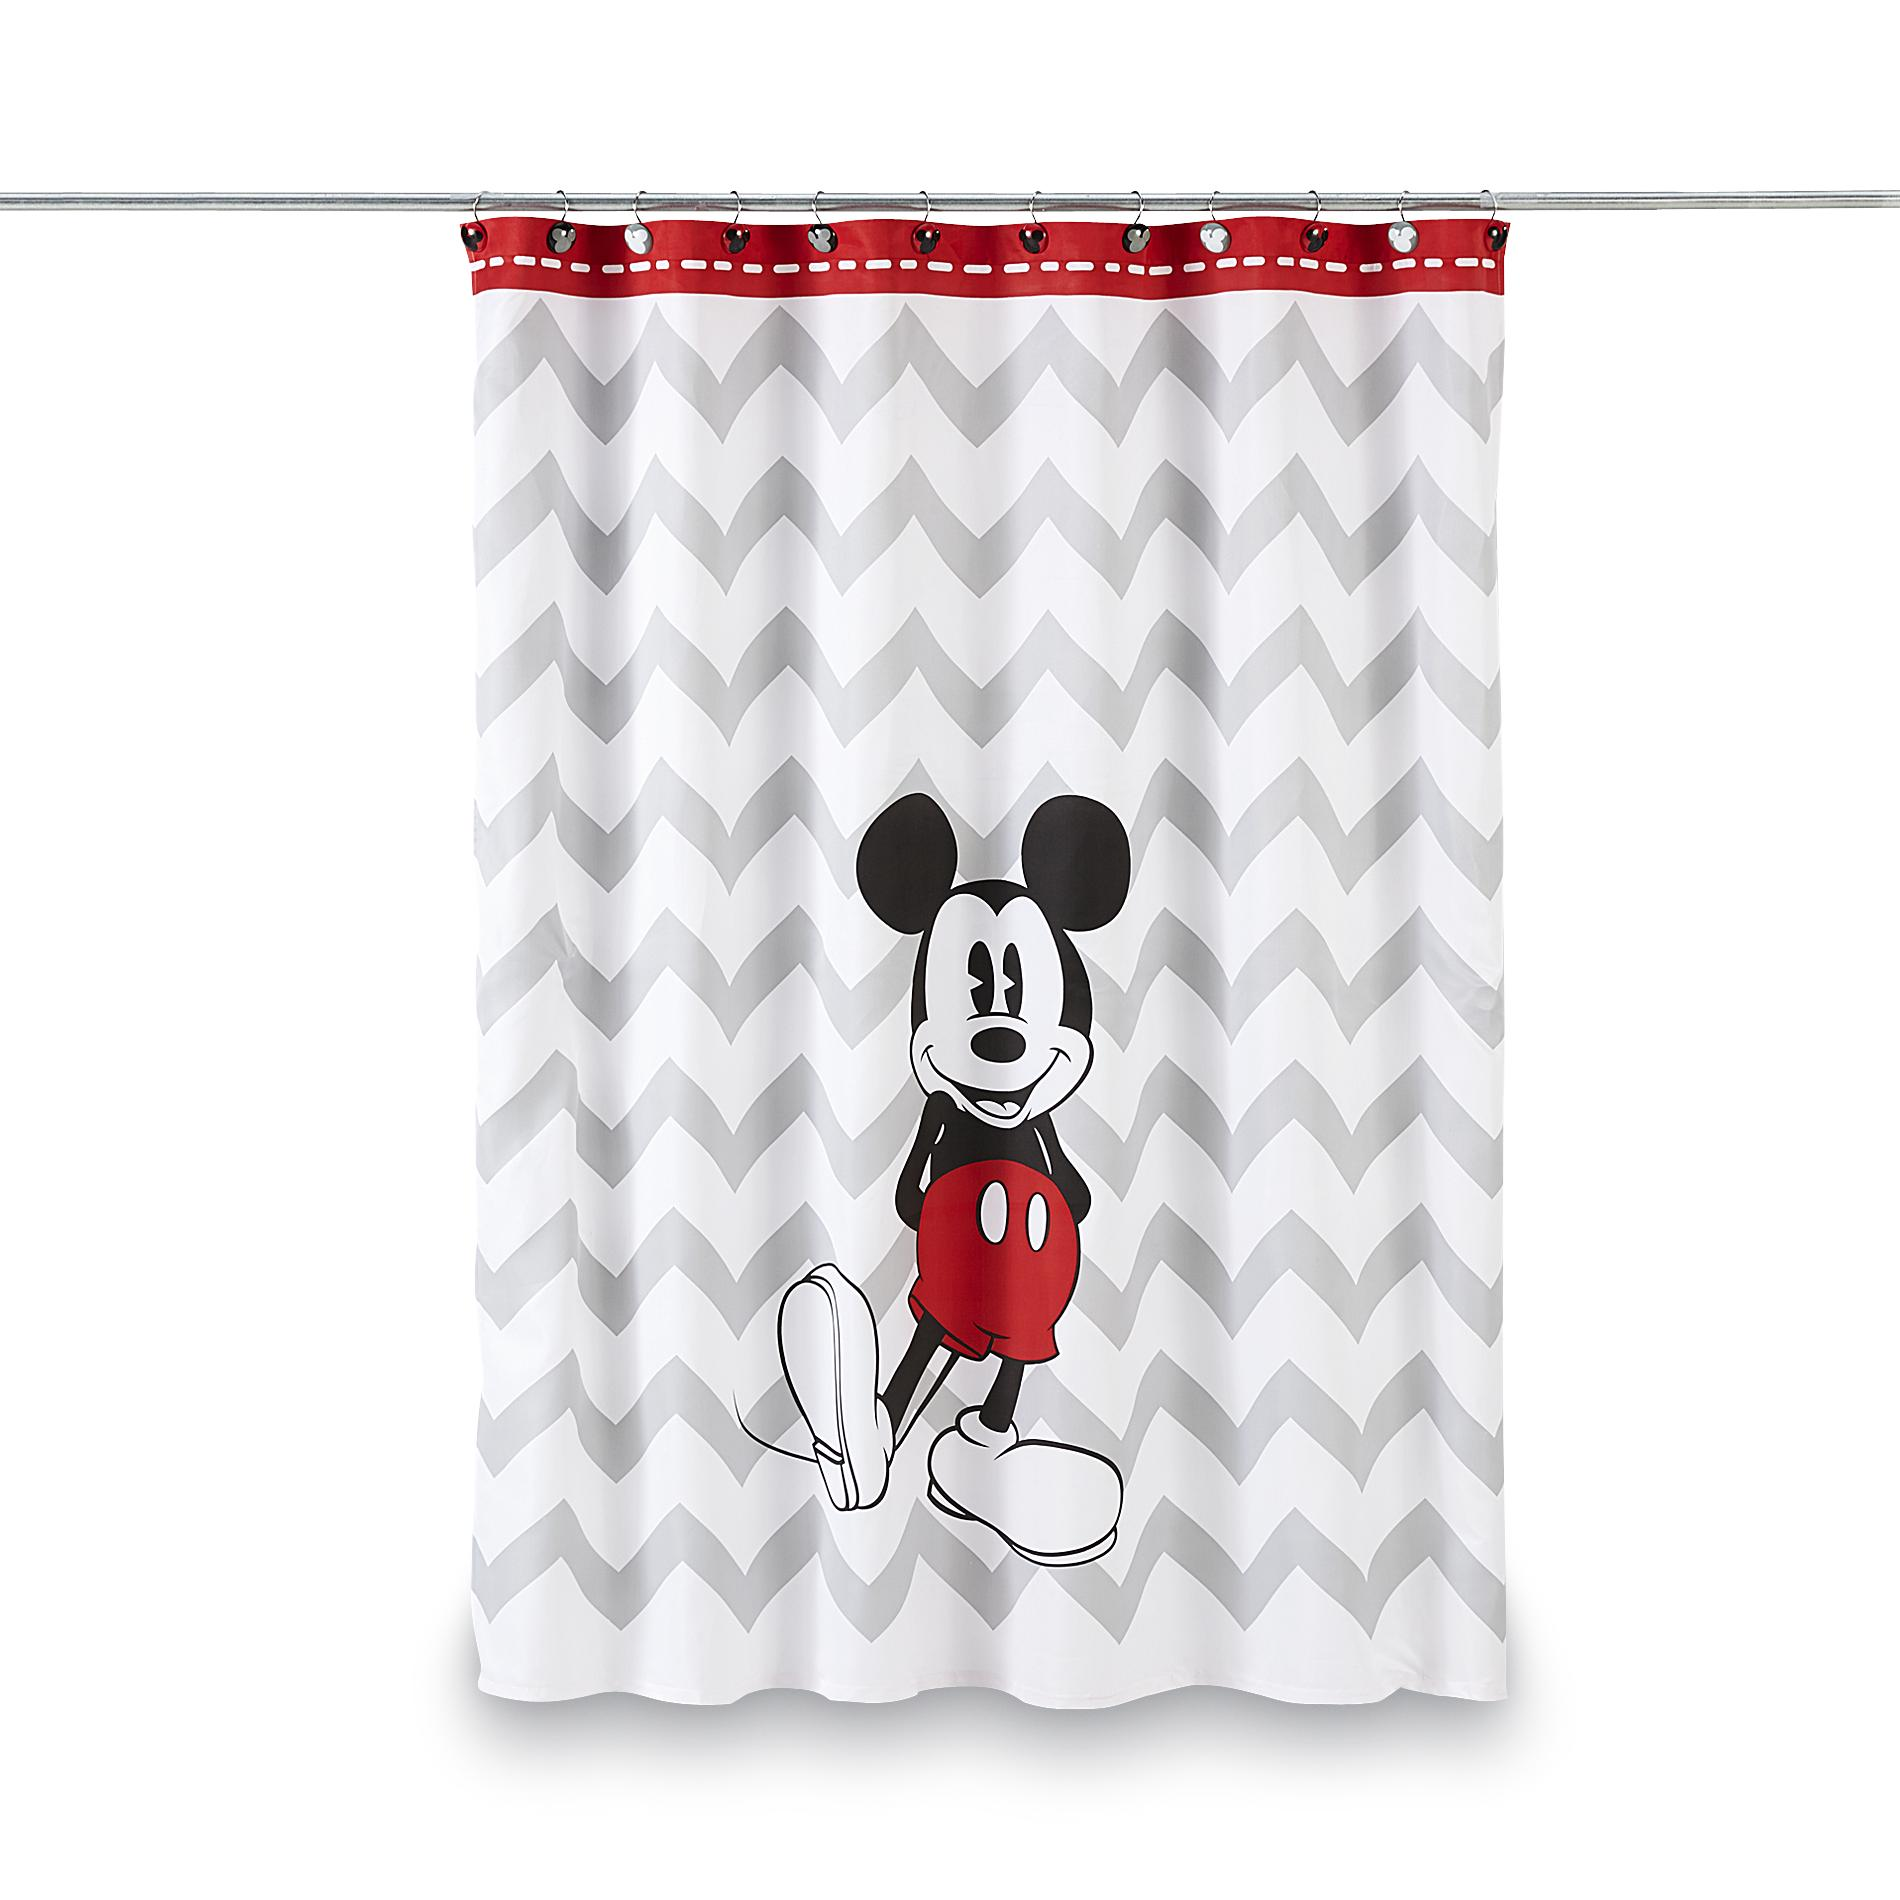 Disney Mickey Mouse Shower Curtain Chevron